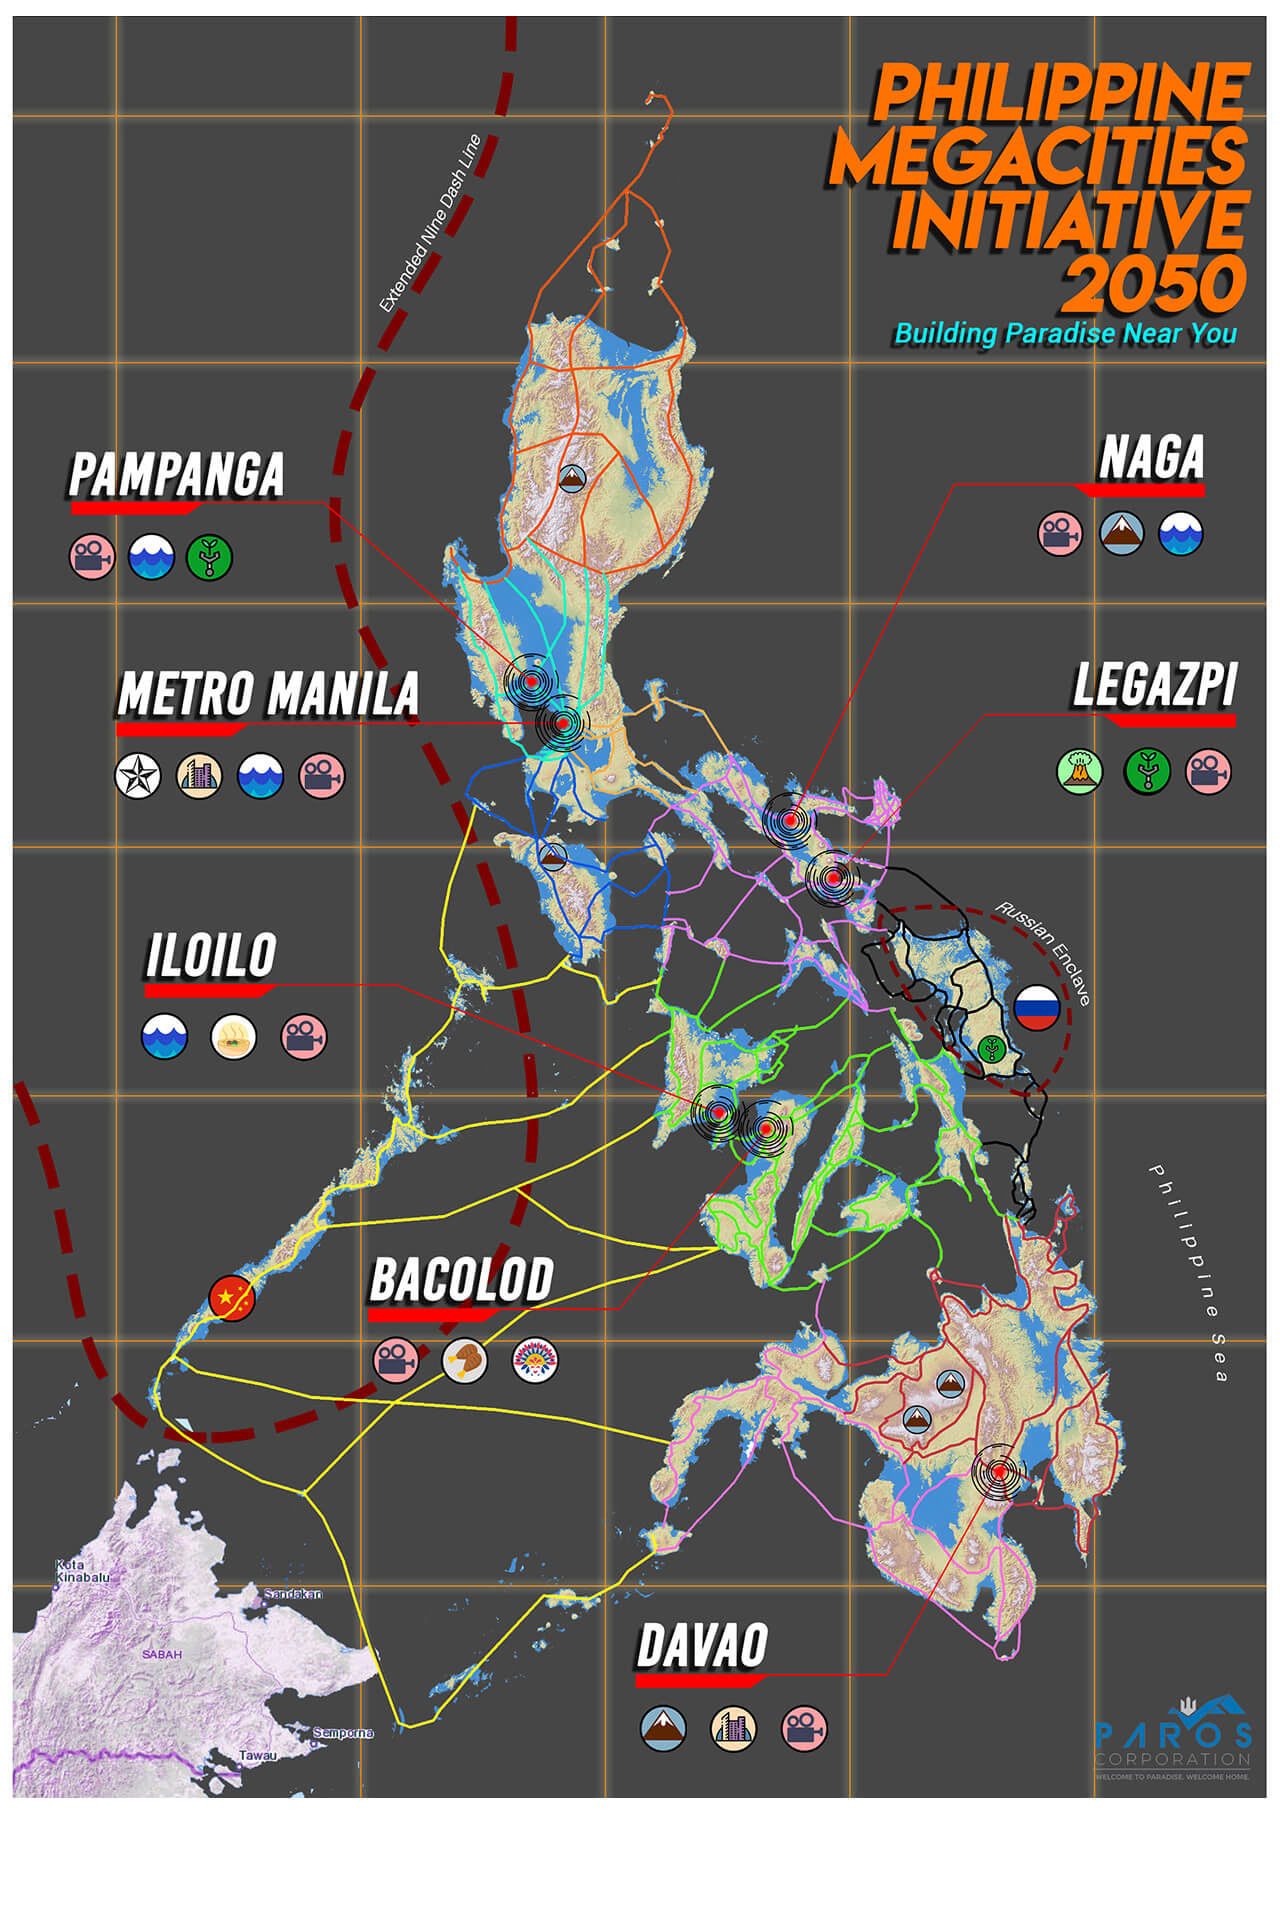 Canon map of the Philippine Megacities Initiative 2050, from the film ANI (2019).